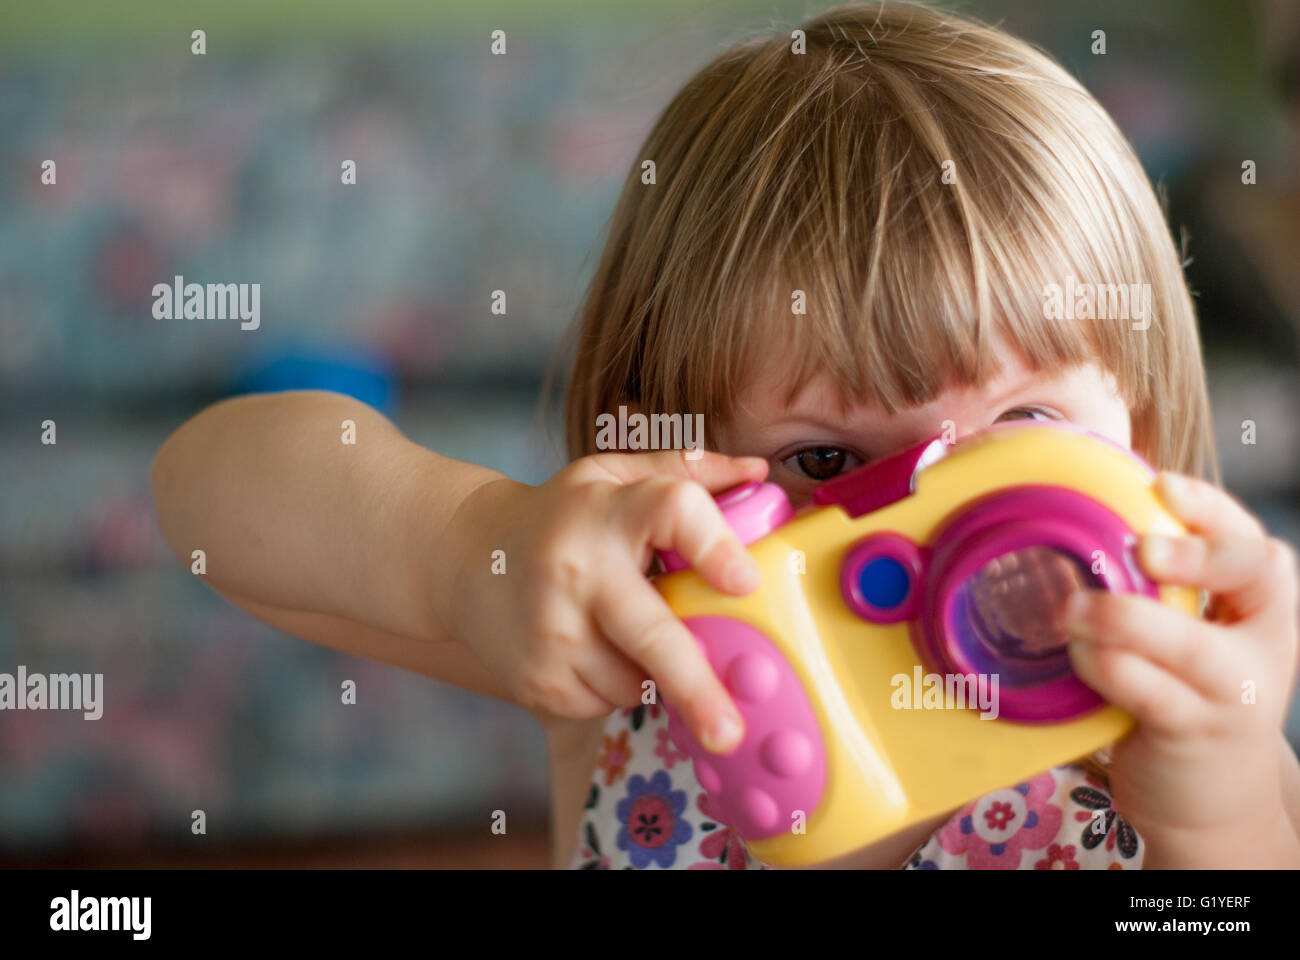 https://c7.alamy.com/comp/G1YERF/little-girl-child-playing-with-camera-taking-a-photo-G1YERF.jpg